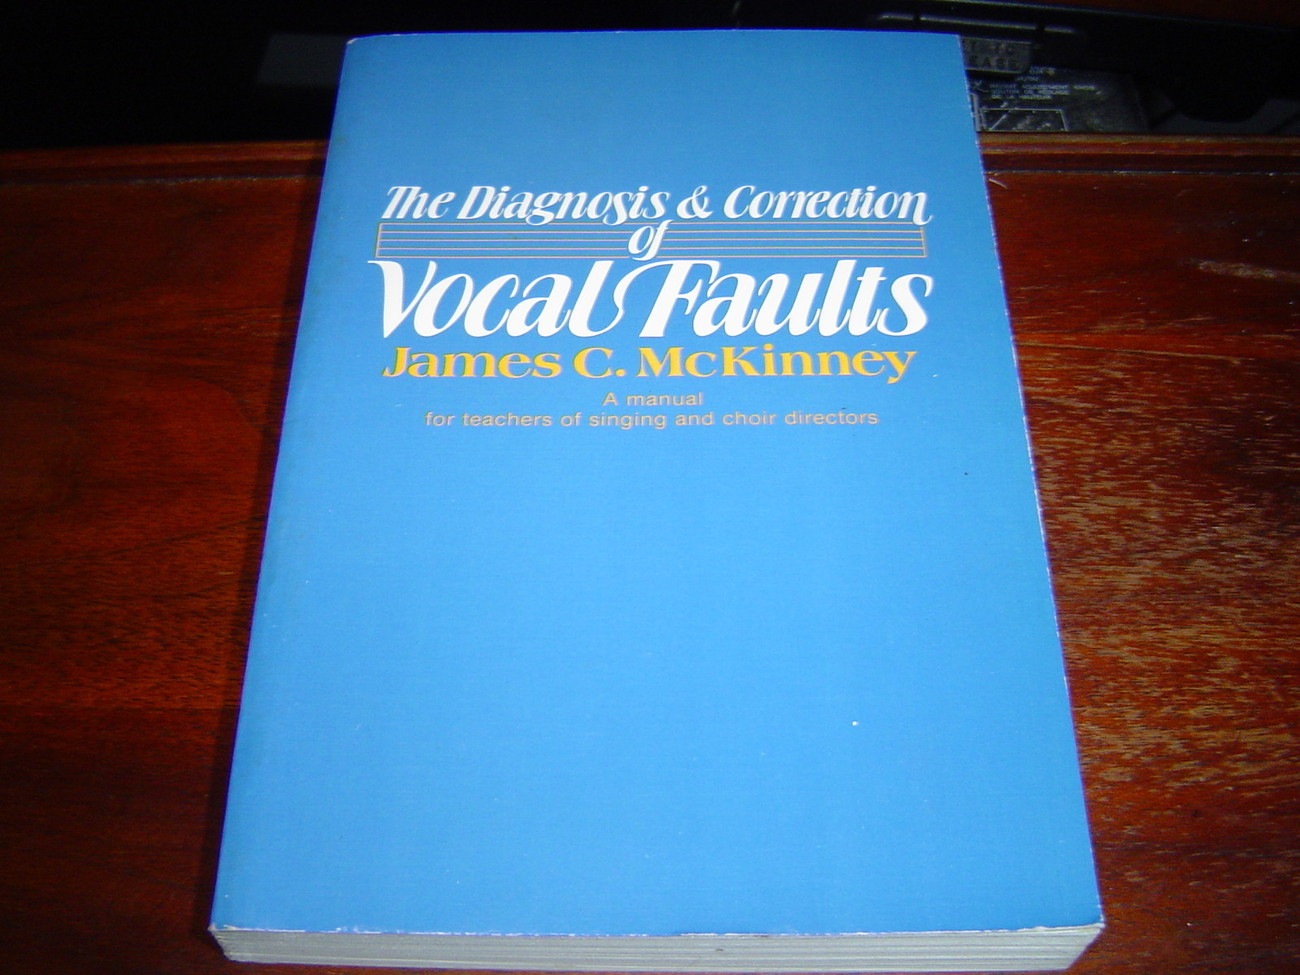 Diagnosis & Correction of Vocal Faults by James C McKinney (1982)